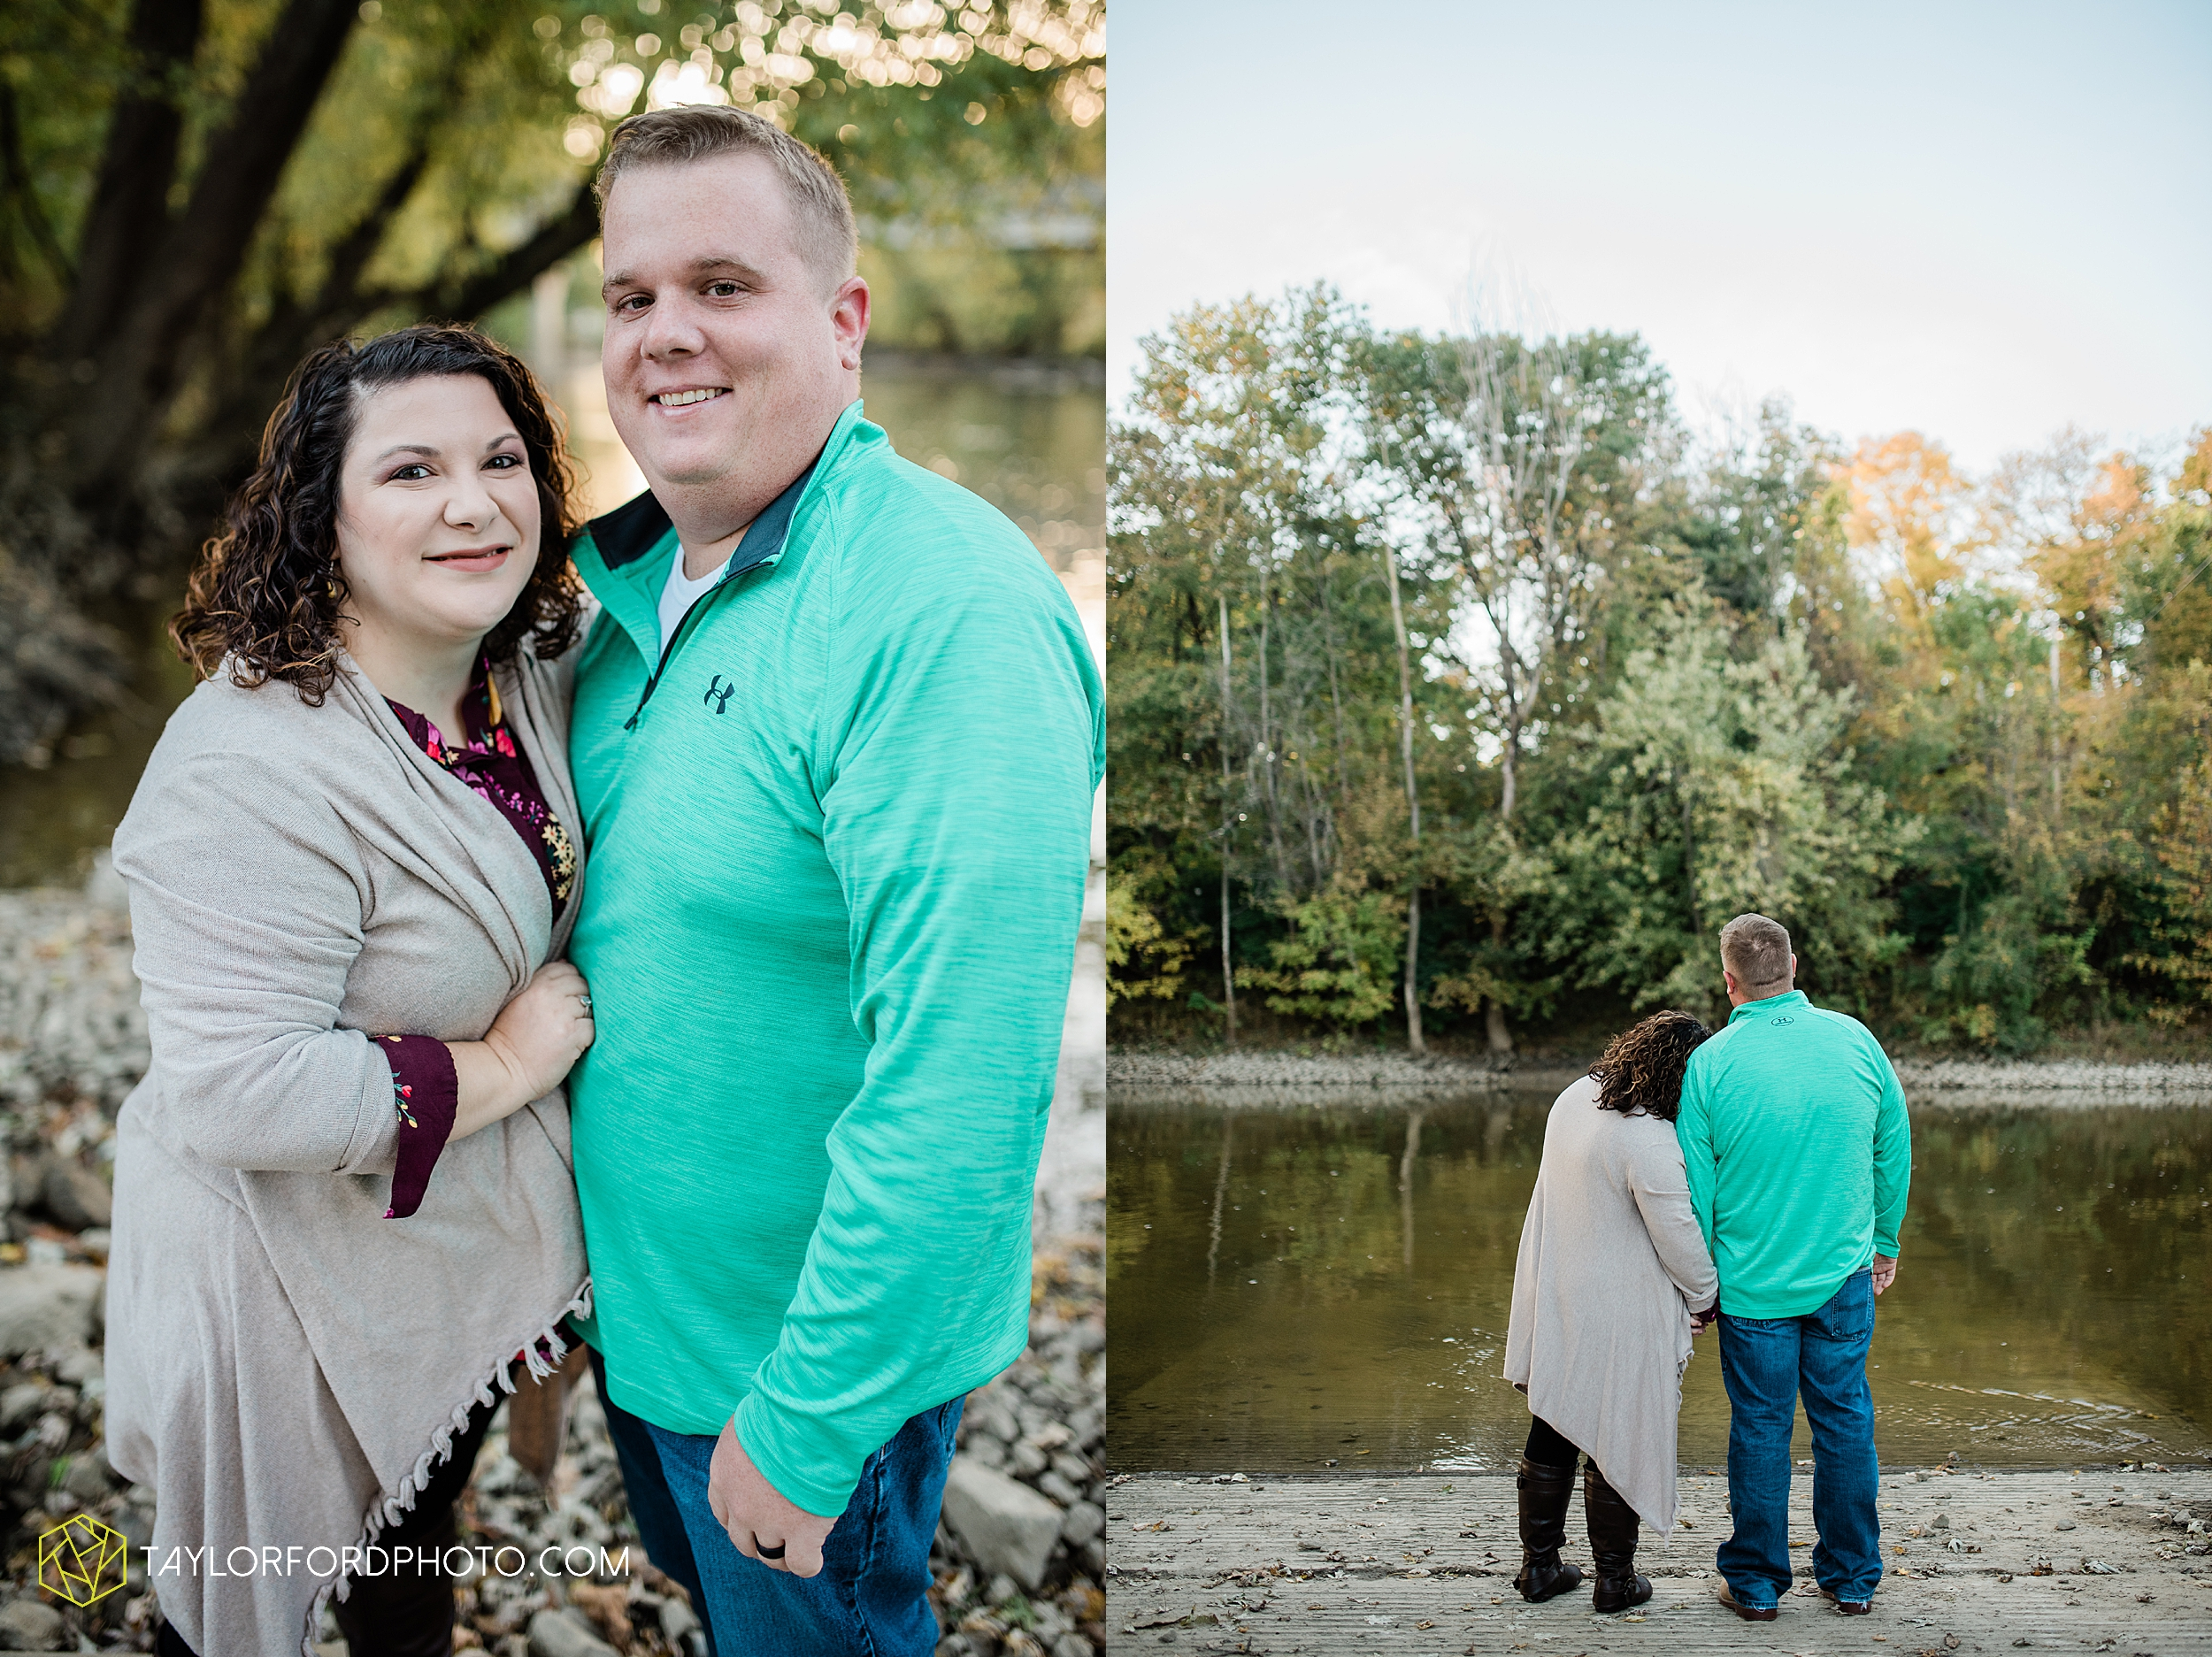 hogan-northeast-fort-wayne-indiana-family-fall-photographer-taylor-ford-photography_1385.jpg